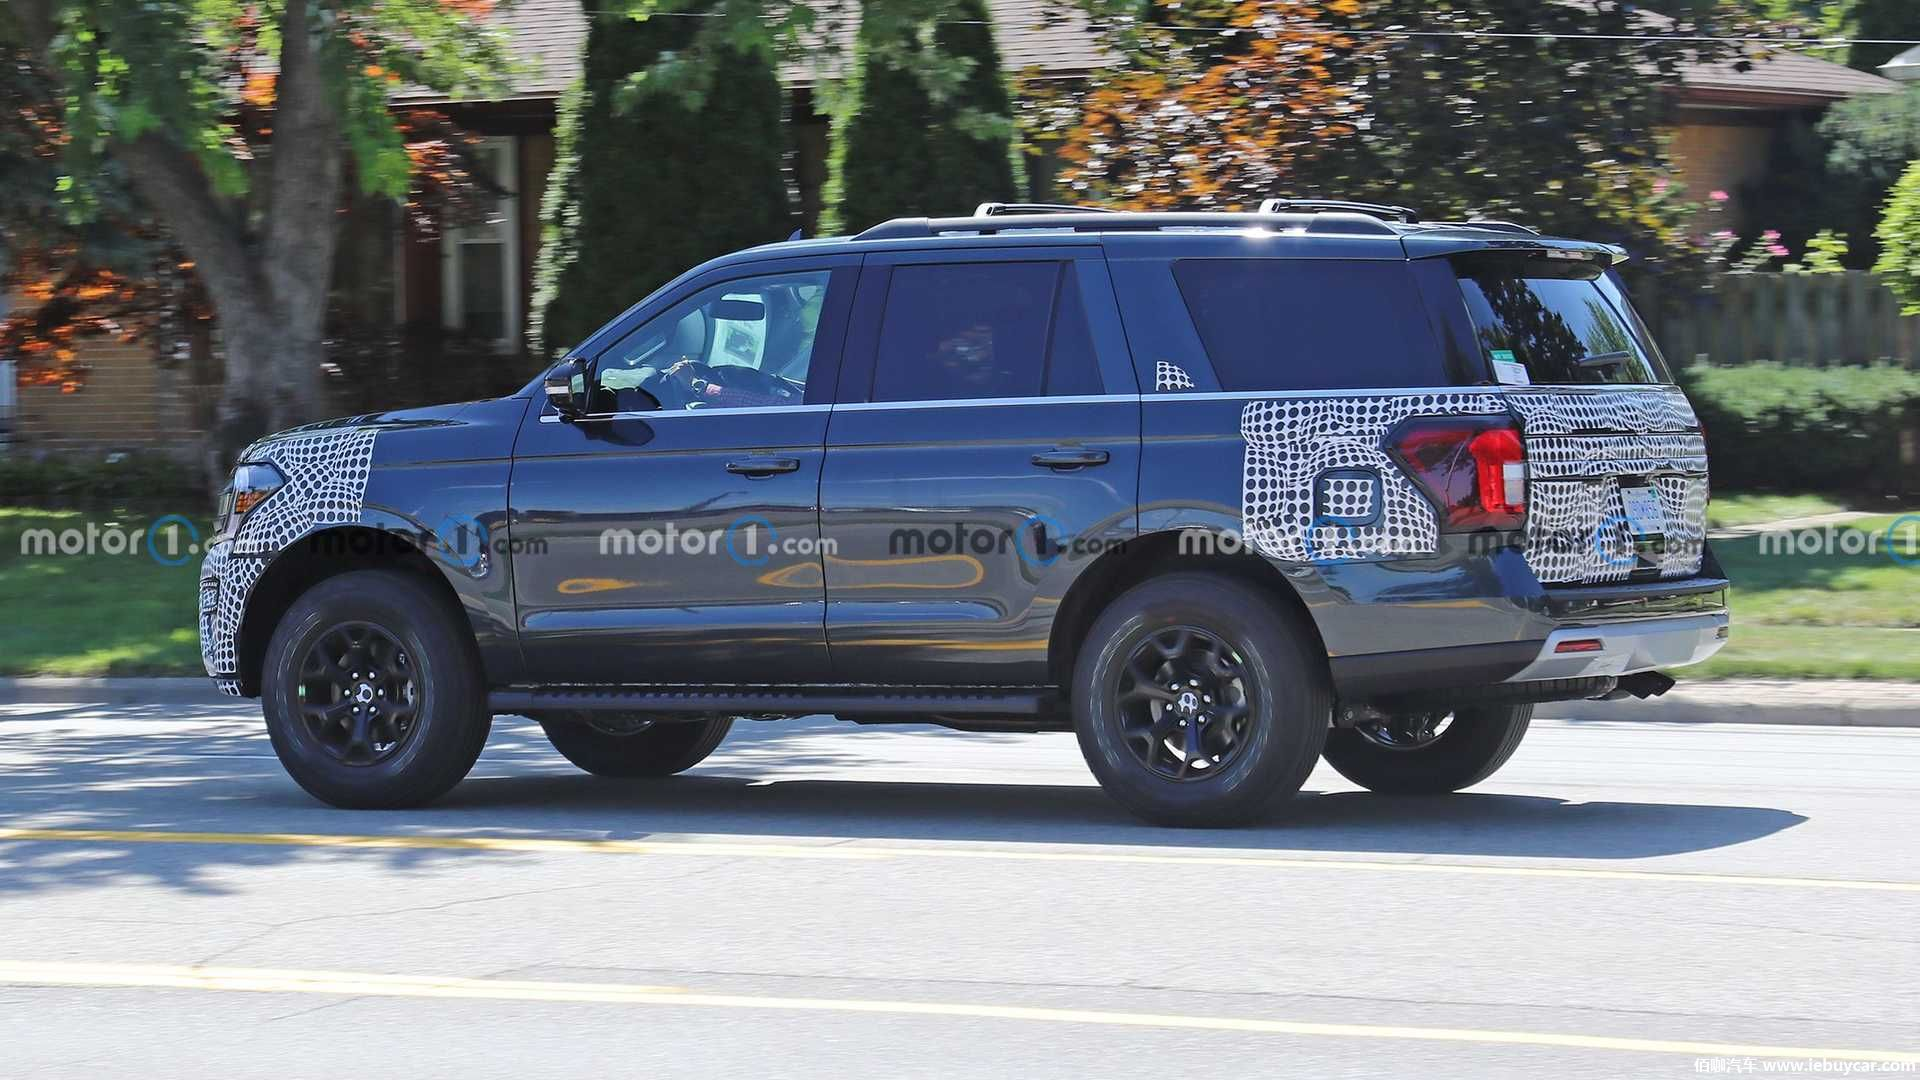 2022-ford-expedition-timberline-new-spy-photo (1).jpg